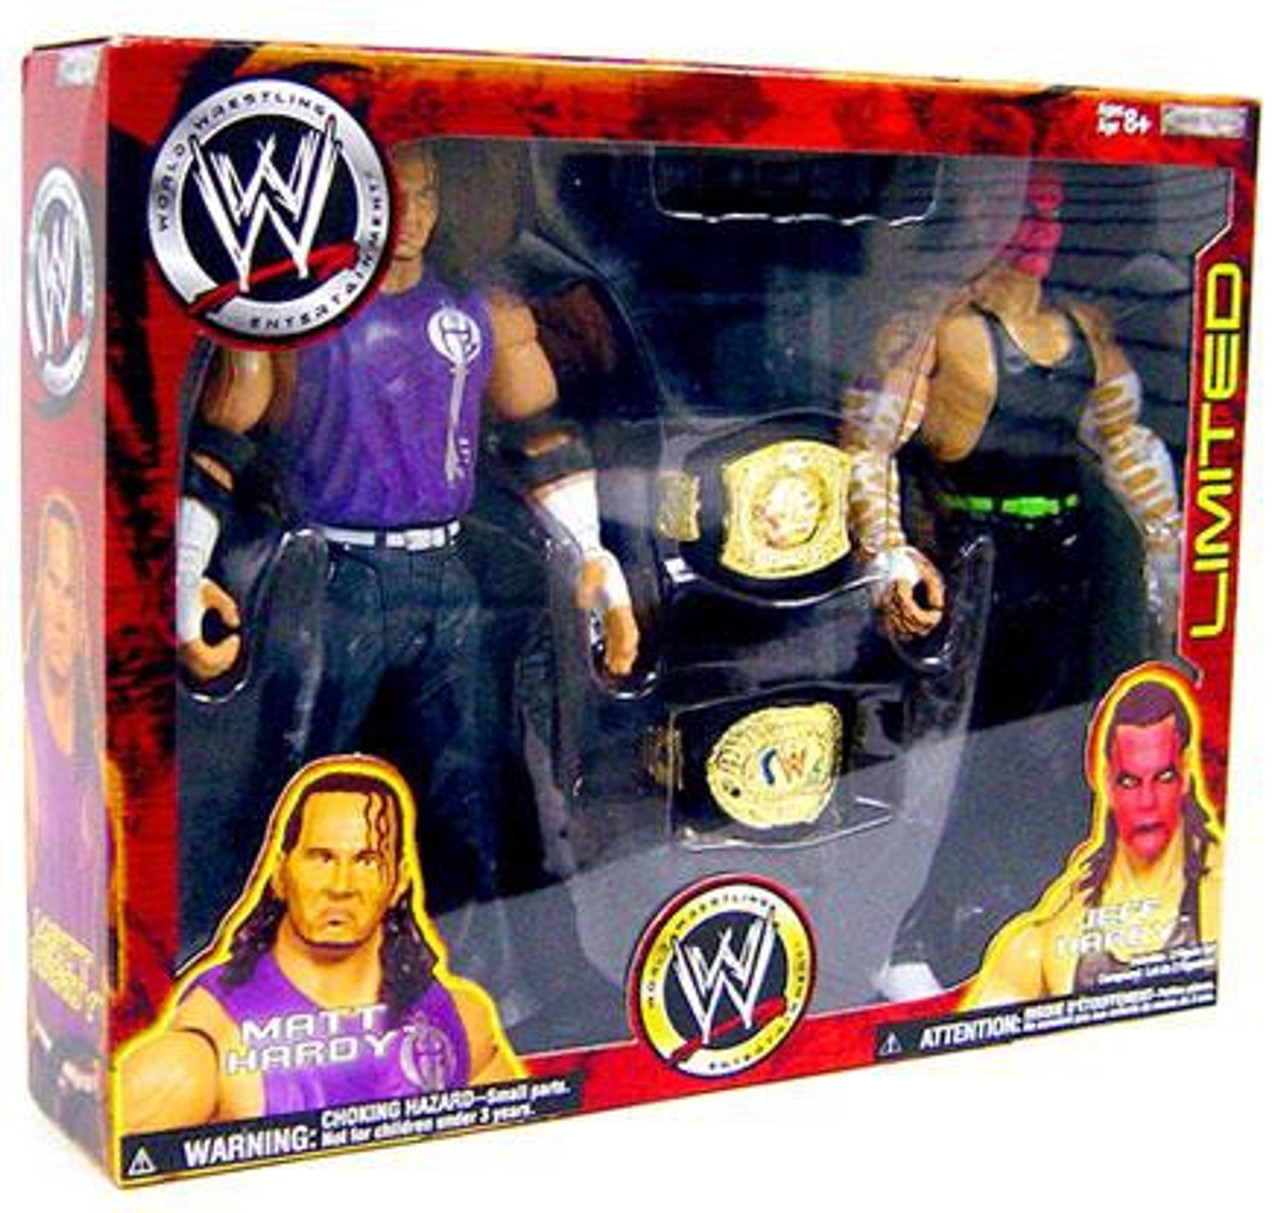 WWE Wrestling Exclusives Matt Hardy & Jeff Hardy Exclusive Action Figure 2-Pack